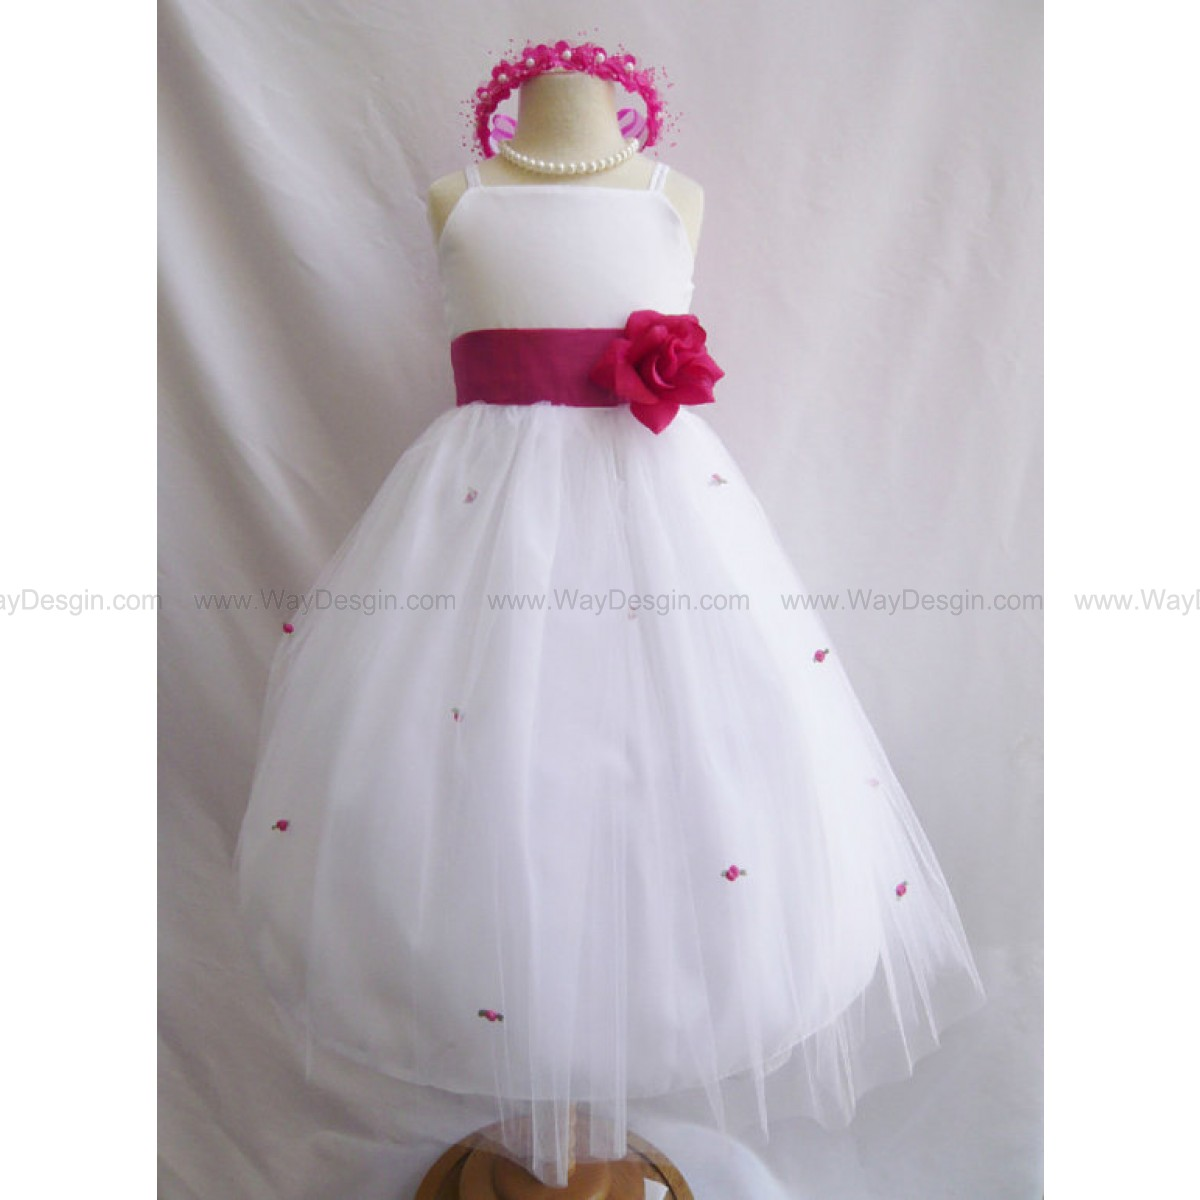 Flower Girl Dress - WHITE Tulle Dress with FUCHSIA Sash and Rosebuds - Communion, Easter, Jr. Bridesmaid, Wedding - Baby to Teen